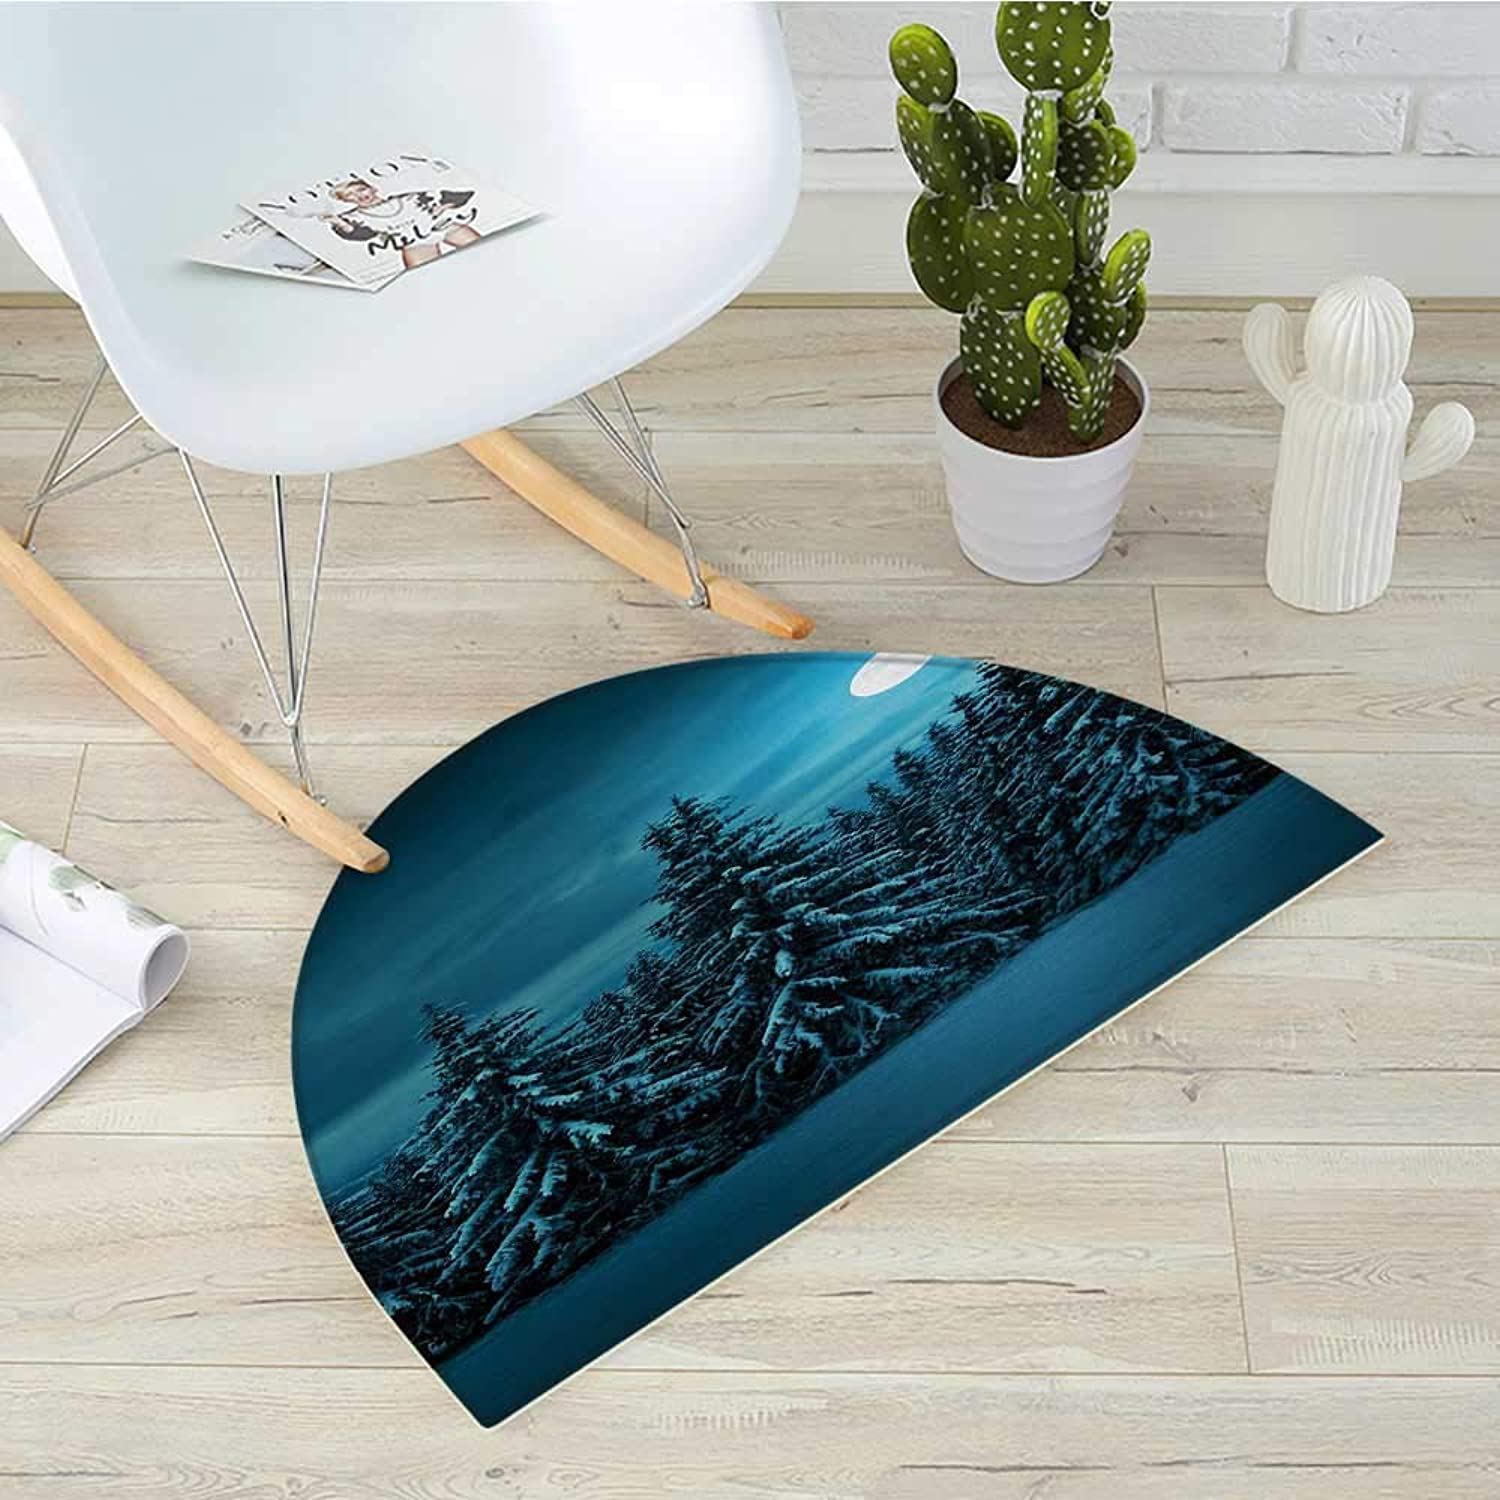 Night Semicircular CushionTranquil bluee Night with Moon in Woods Covered with Snow Serene Winter View Entry Door Mat H 43.3  xD 64.9  Turquoise Teal White